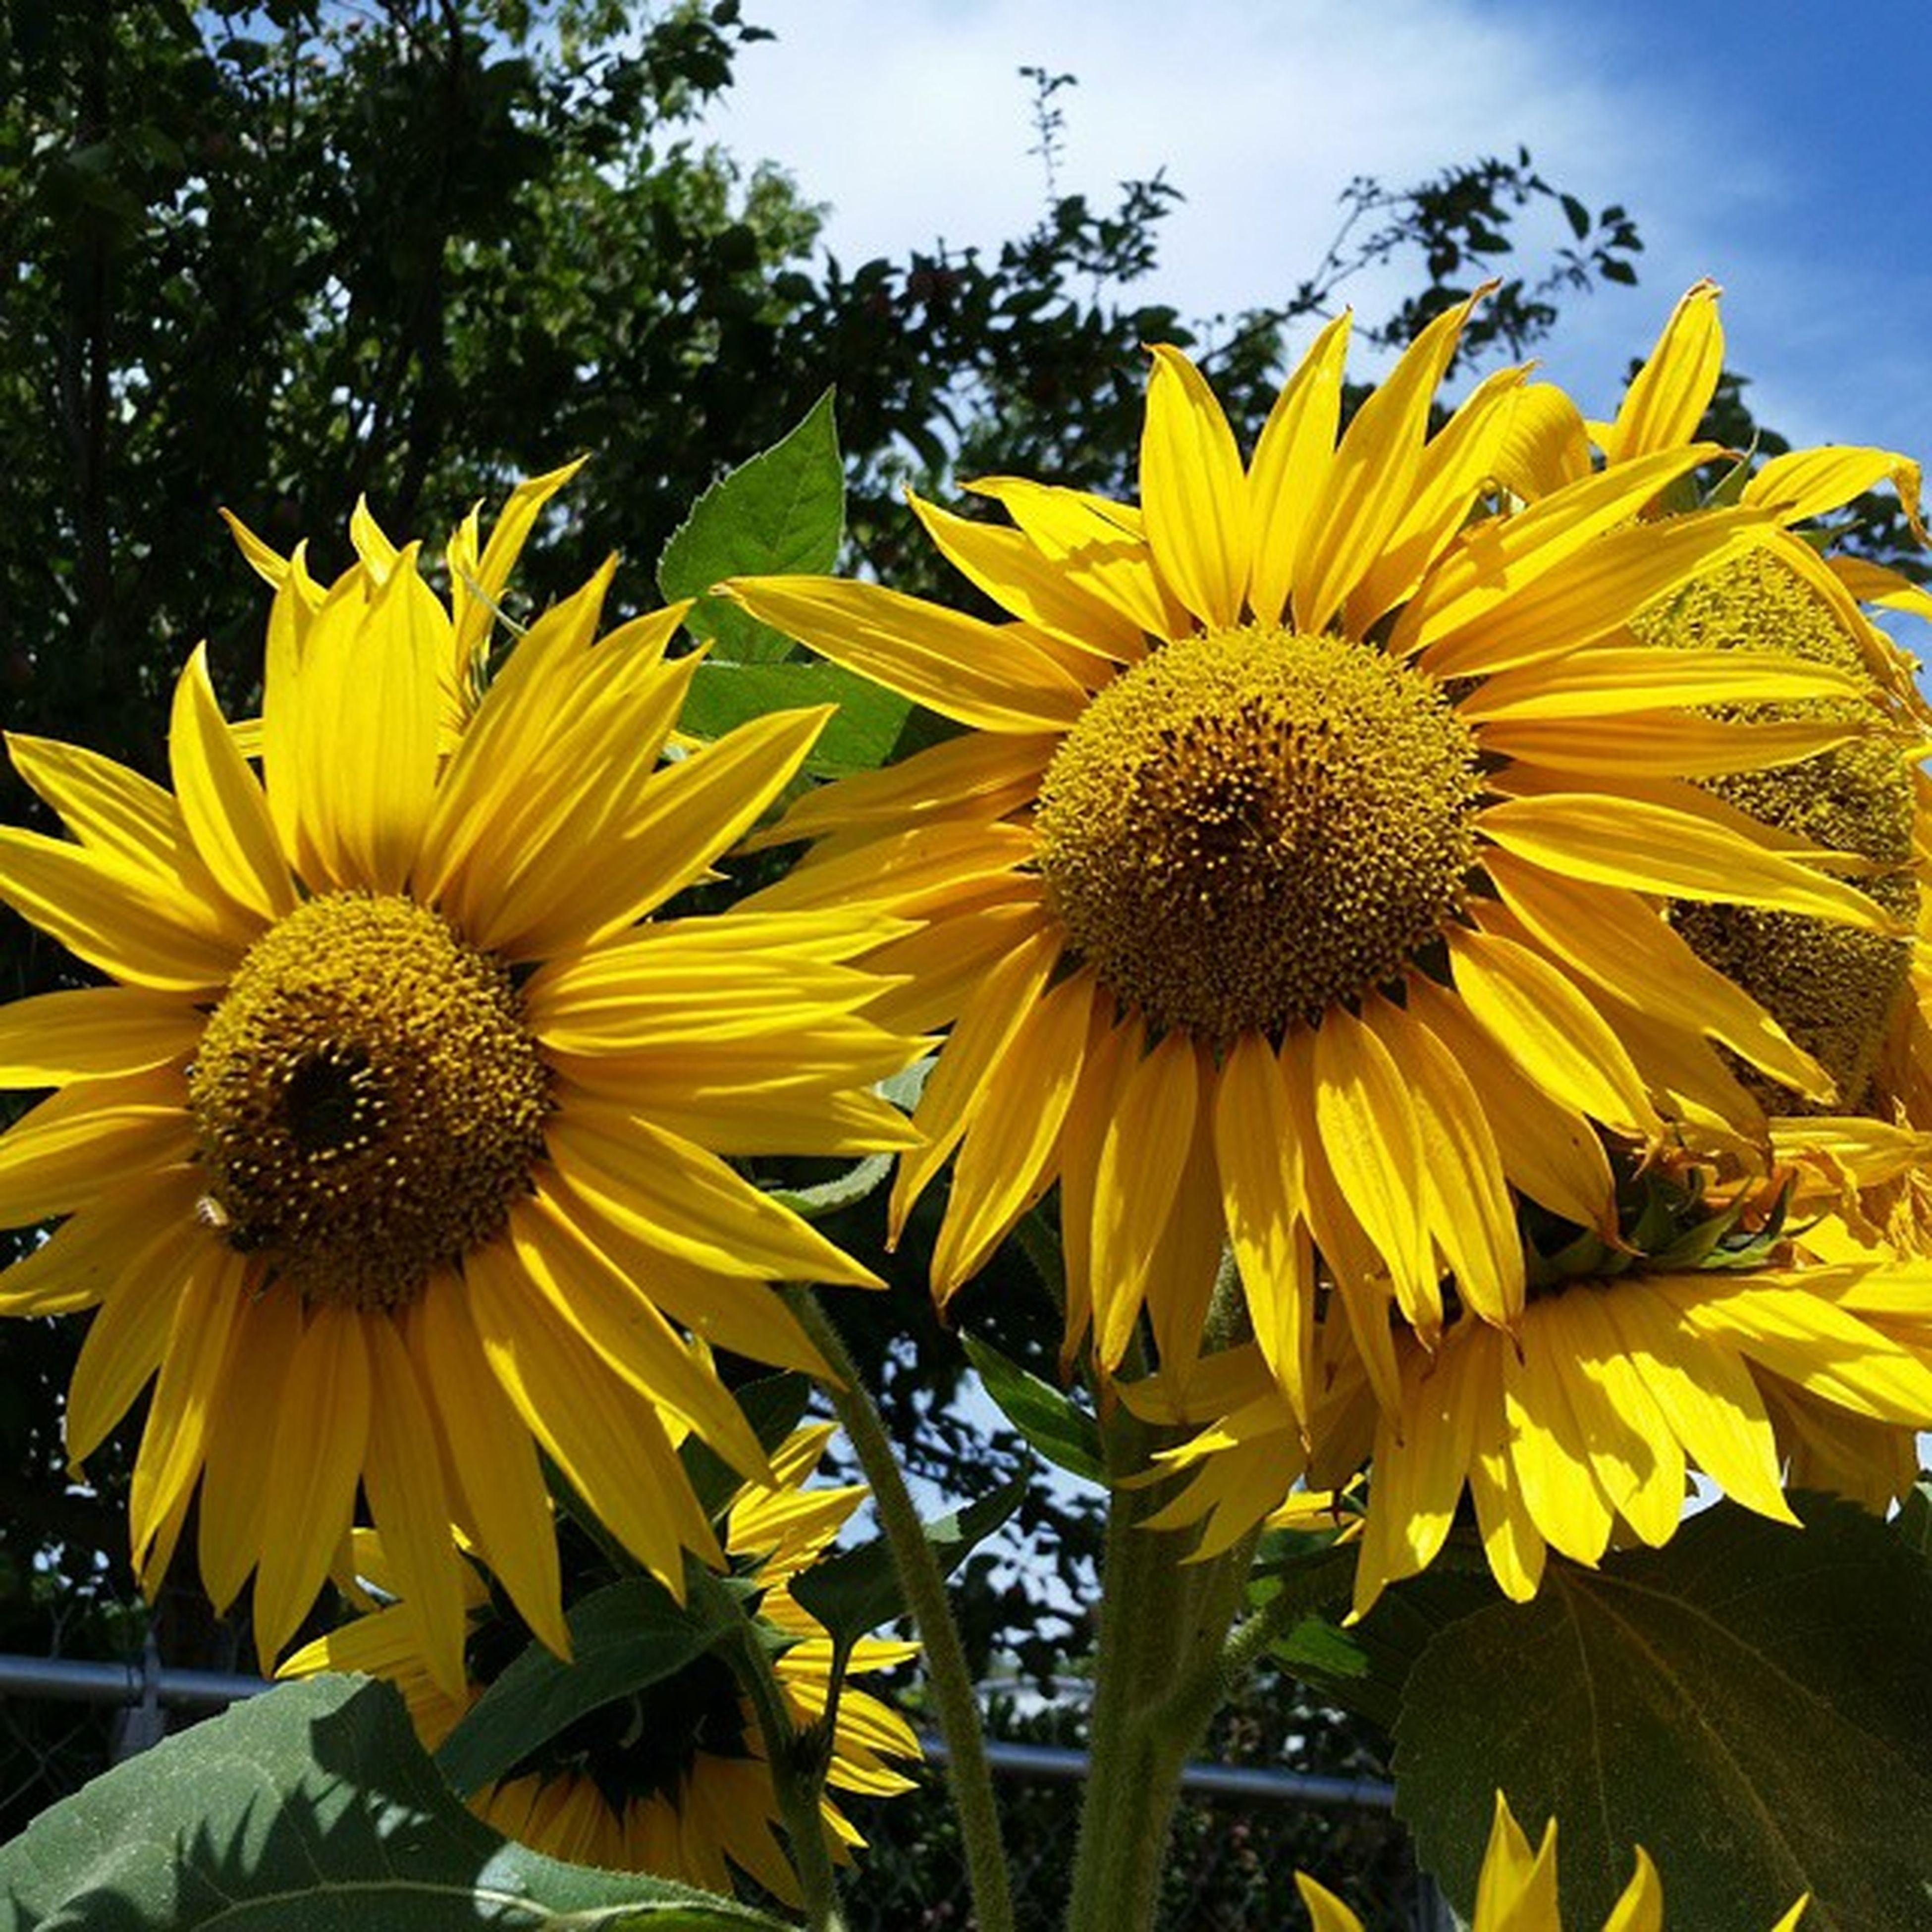 flower, yellow, freshness, petal, flower head, fragility, sunflower, growth, pollen, beauty in nature, blooming, close-up, plant, nature, focus on foreground, in bloom, sky, outdoors, day, no people